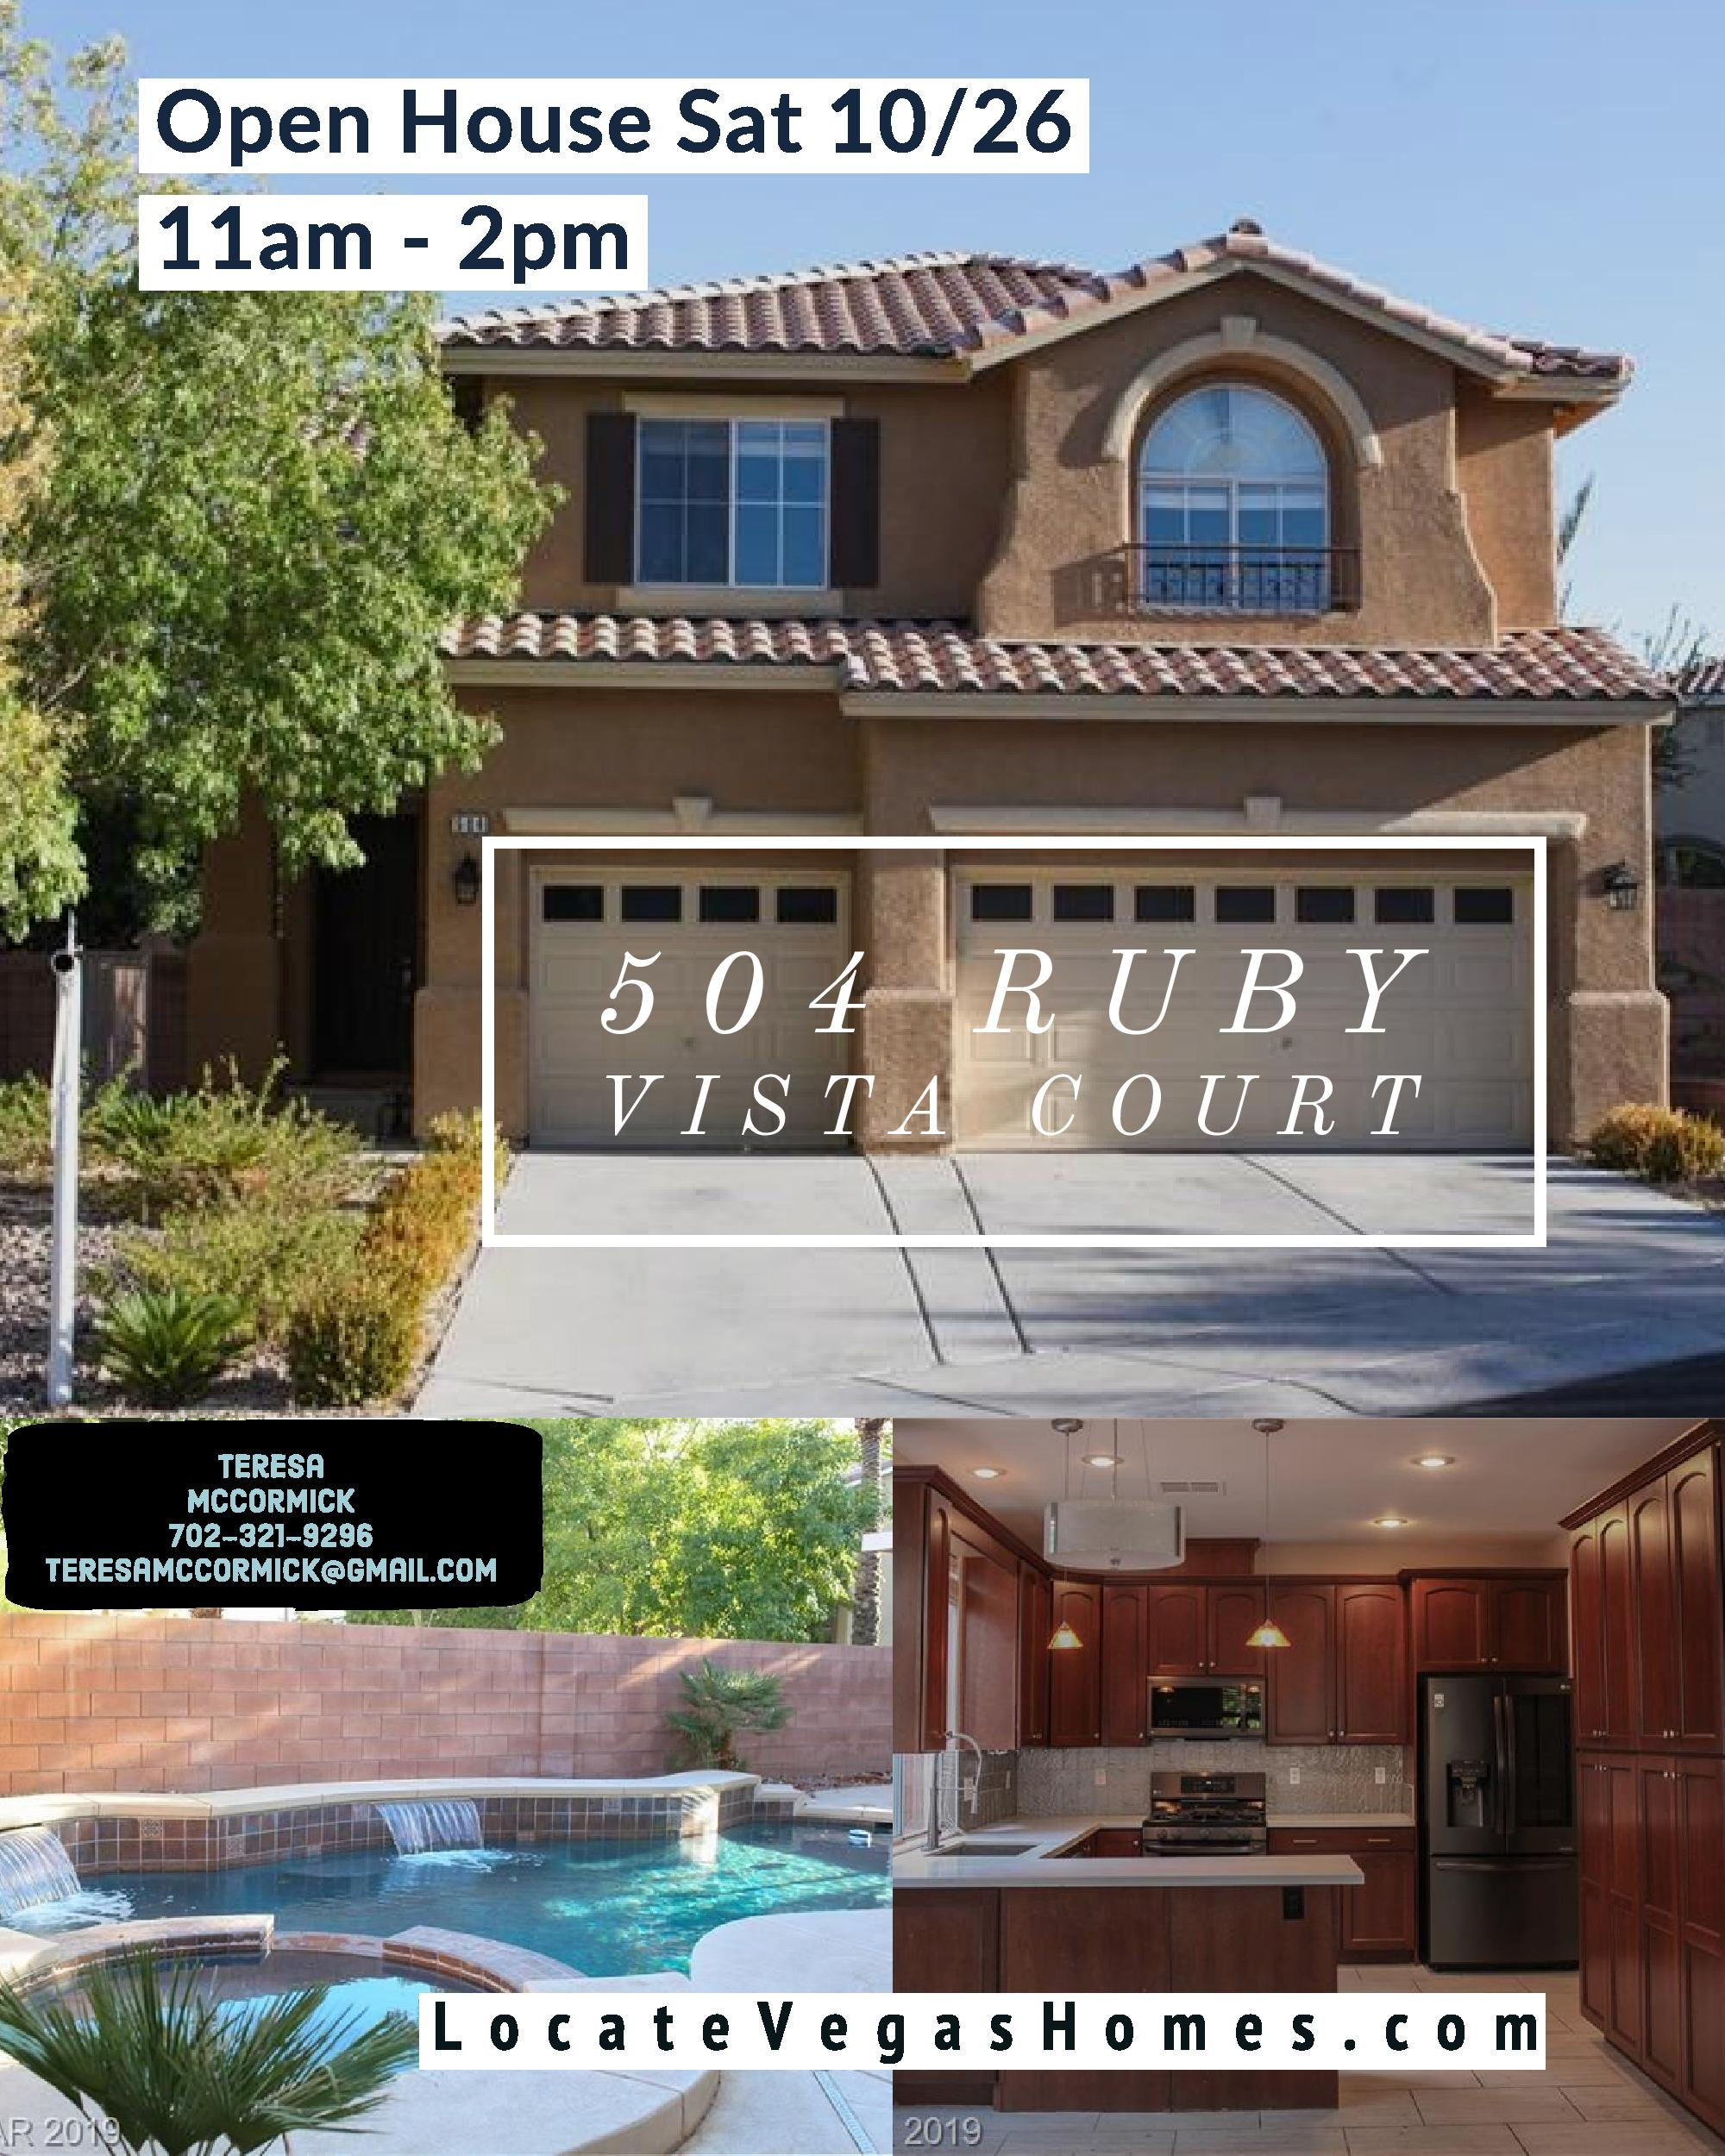 Open House Saturday 10/26/19 11:00am - 2:00pm